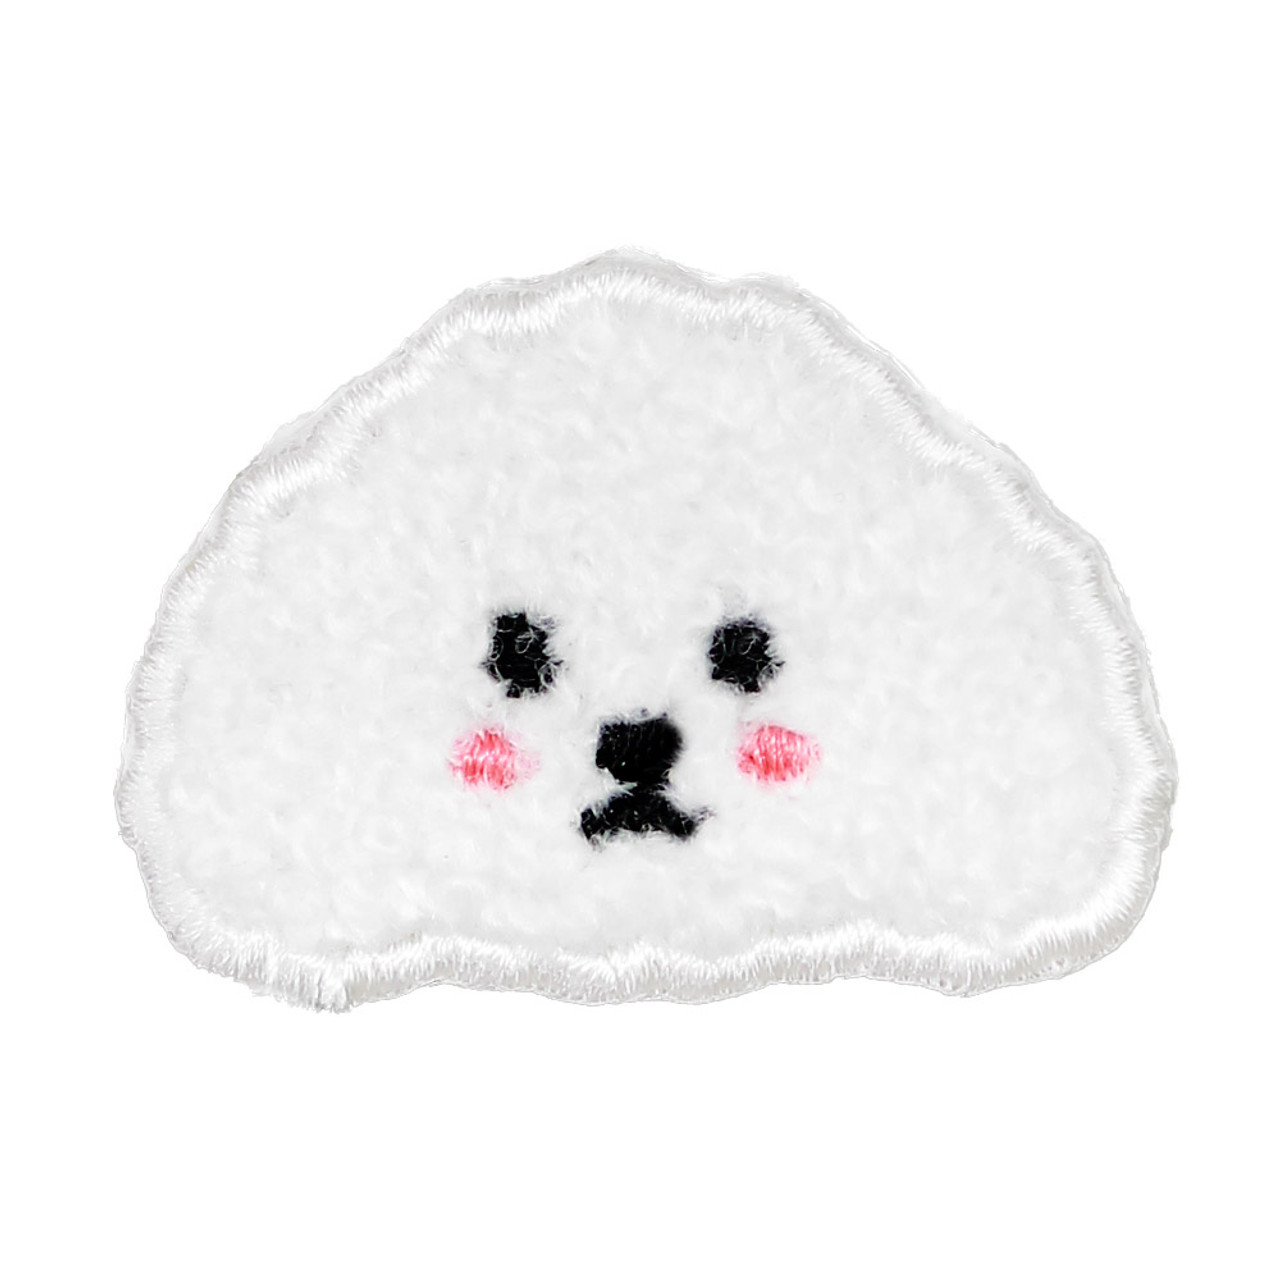 Kawaii White Poodle Dog Iron On Patch ( Front view )